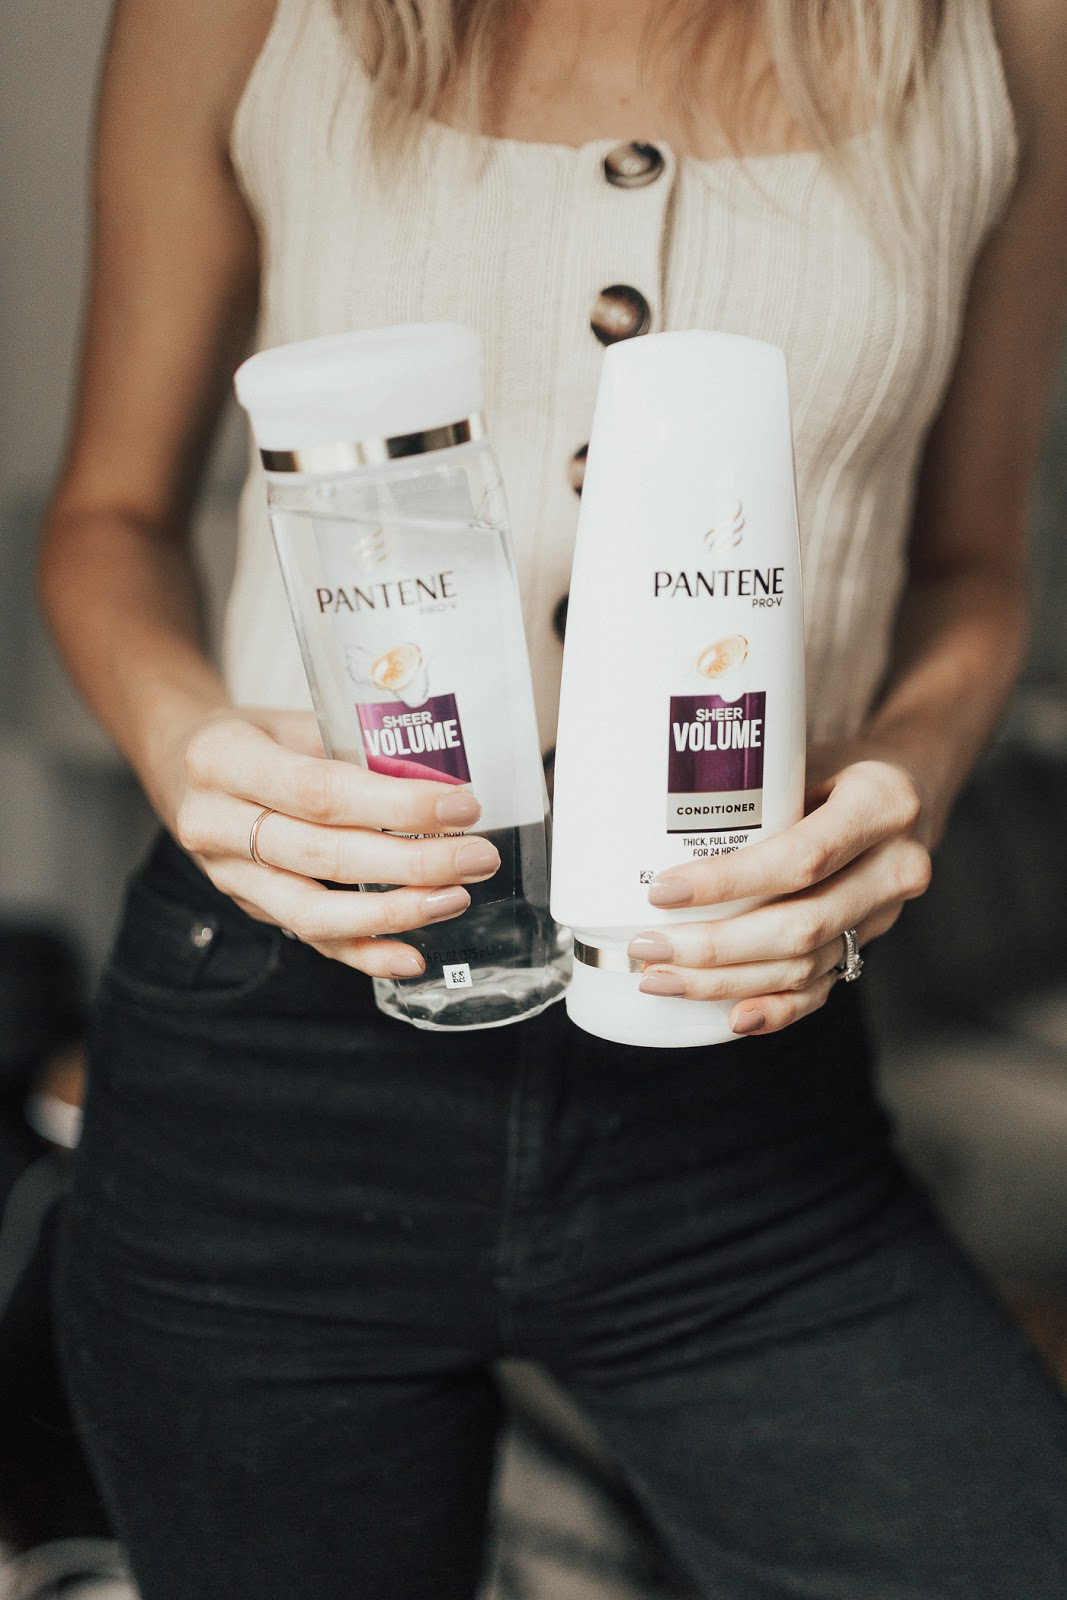 Pantene Sheer Volume Shampoo and Conditioner - give you volume, but also shine